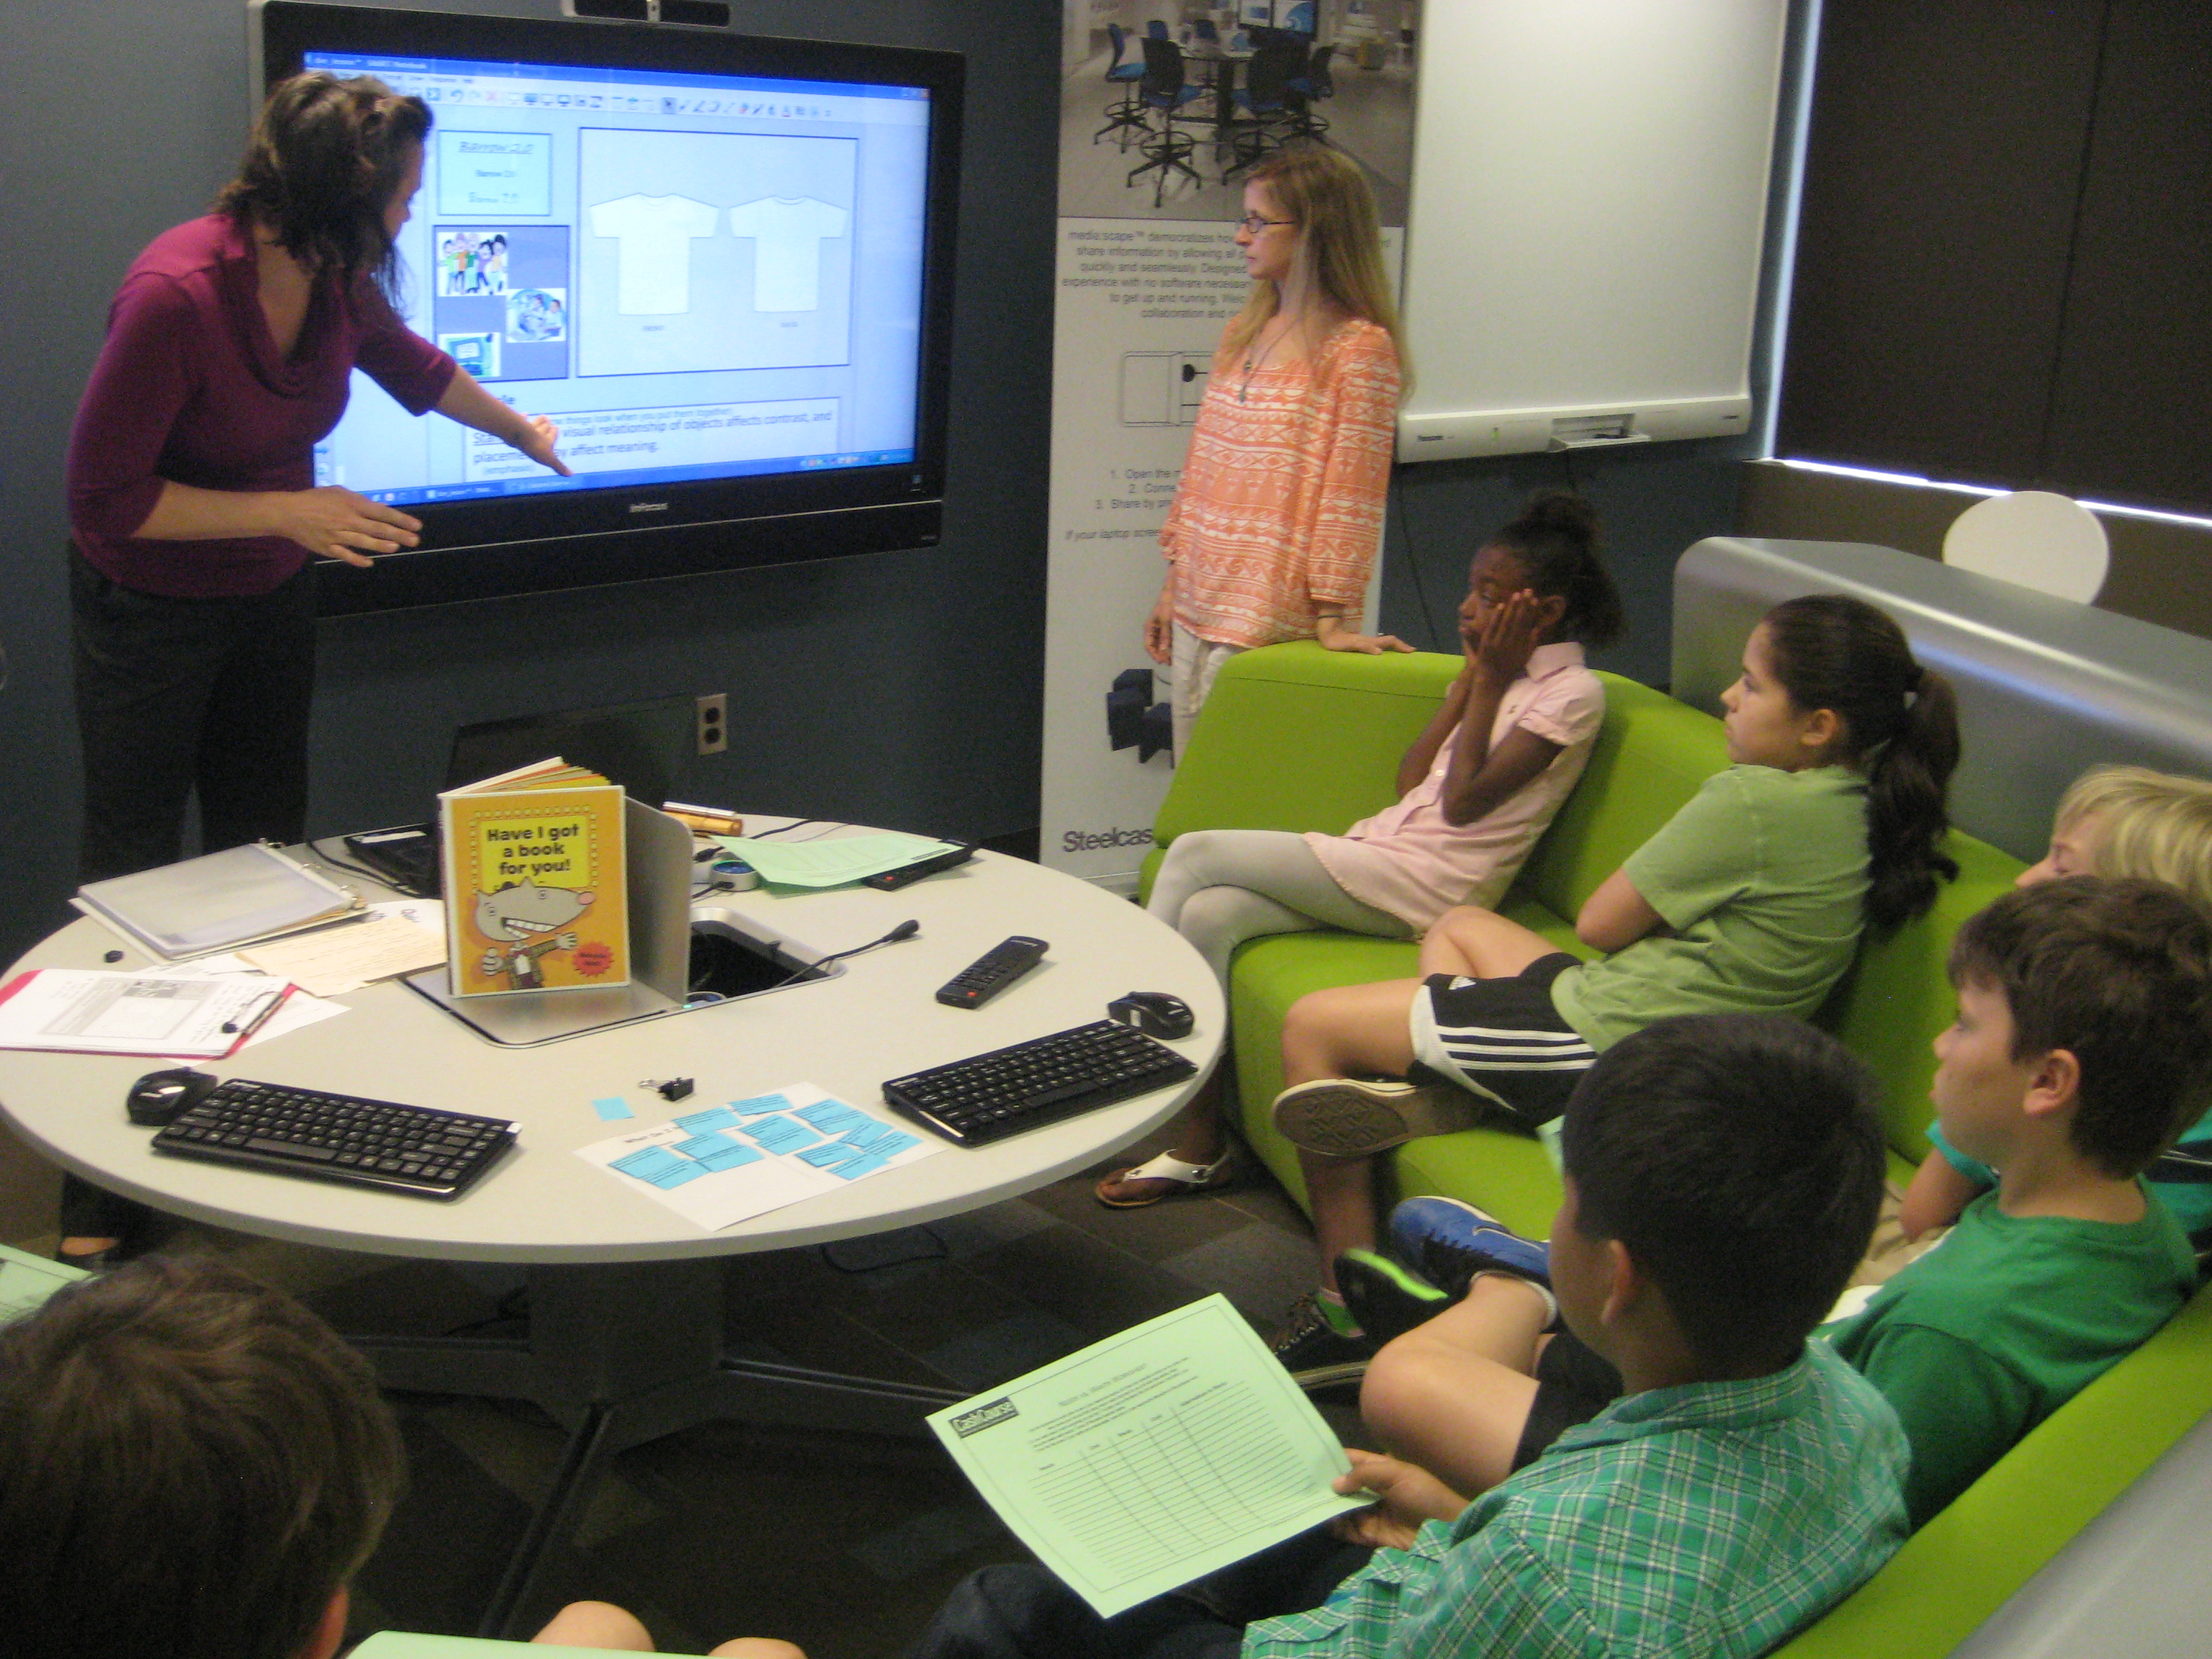 Innovative Primary Classrooms : St century classroom characteristics great